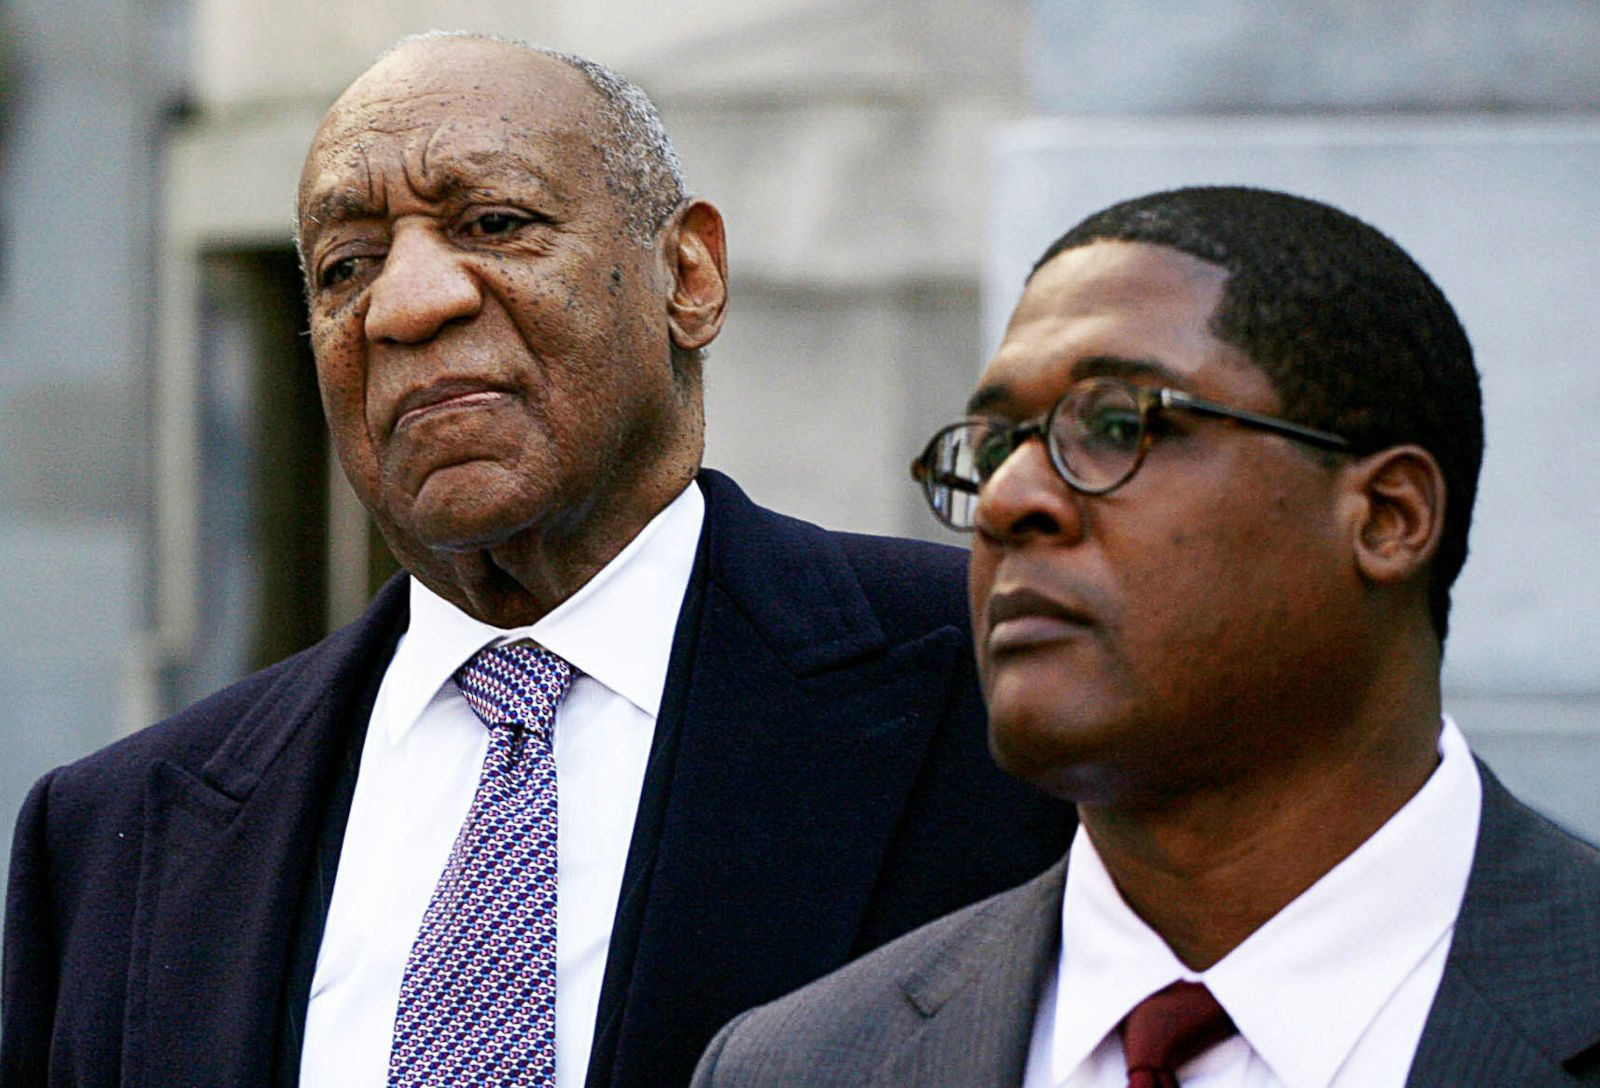 Cosby defense expert reveals he Googled side effects of Benadryl for